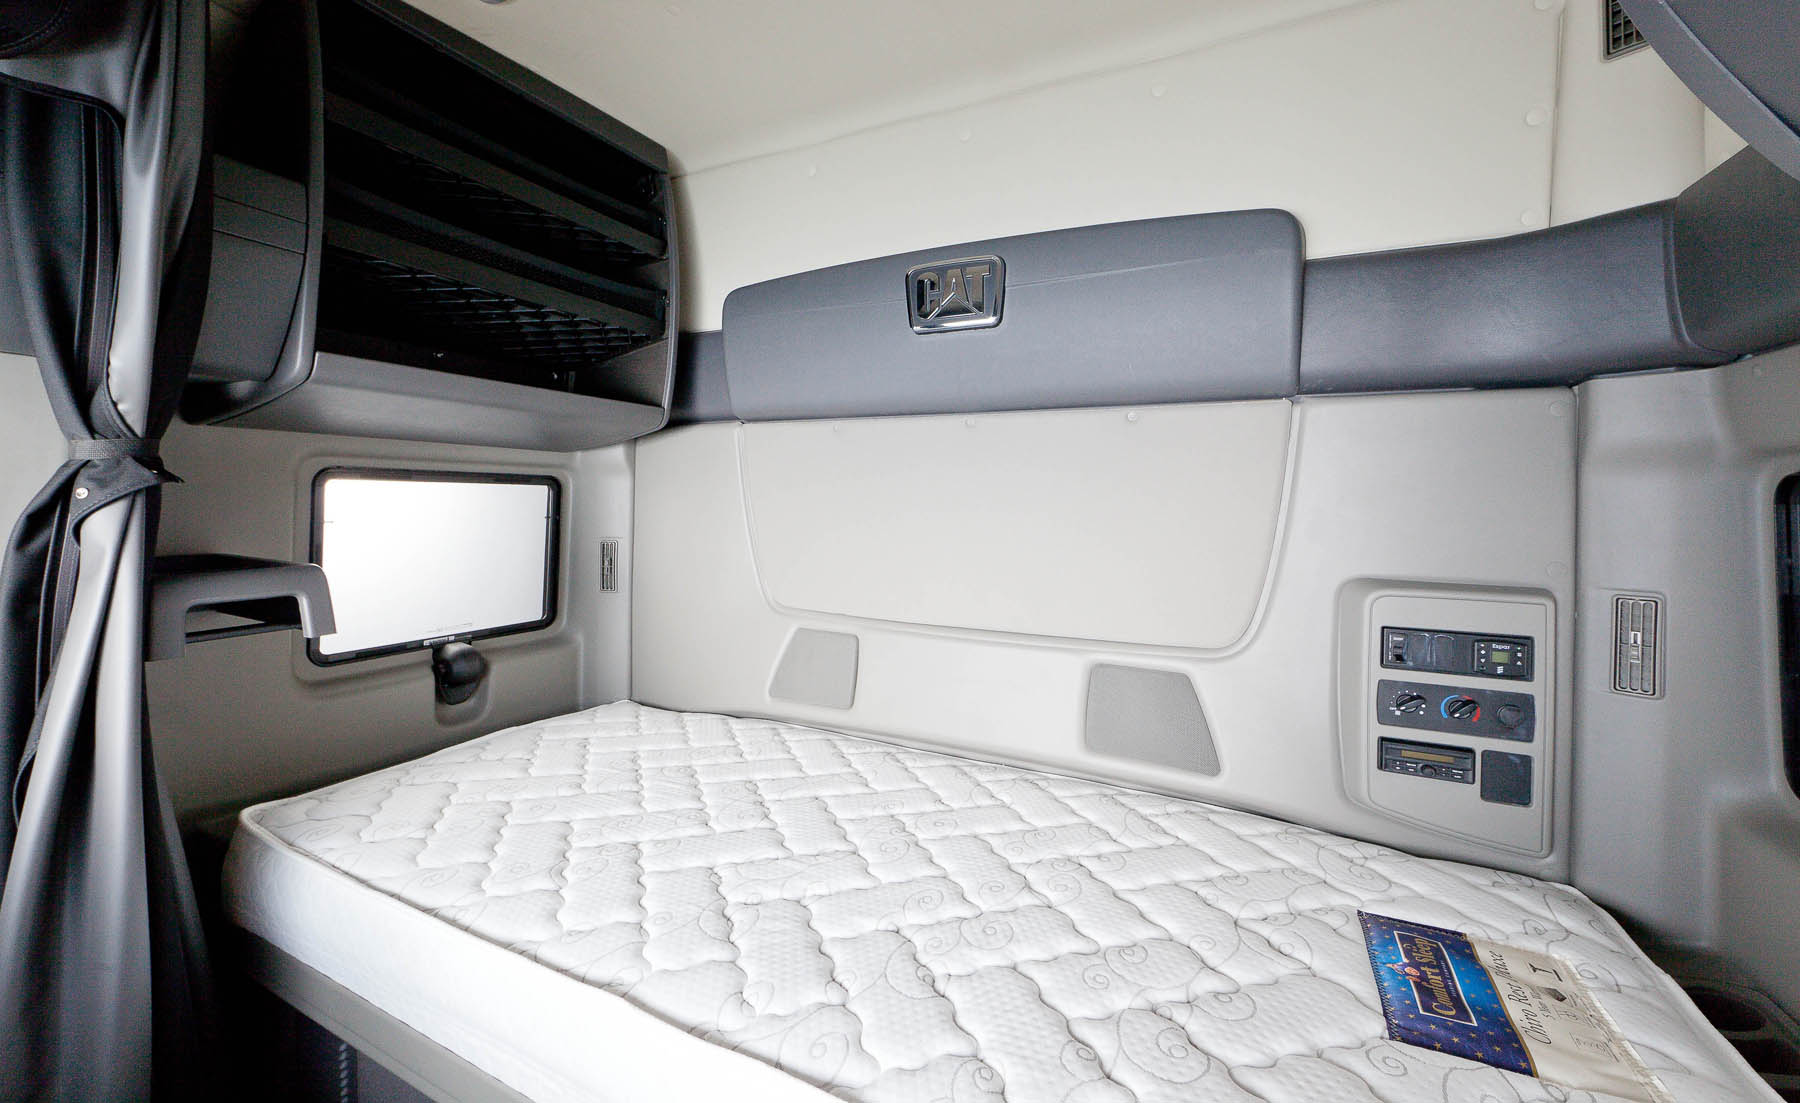 Tax Free Fuel For Sleeper Cab Air Conditioning